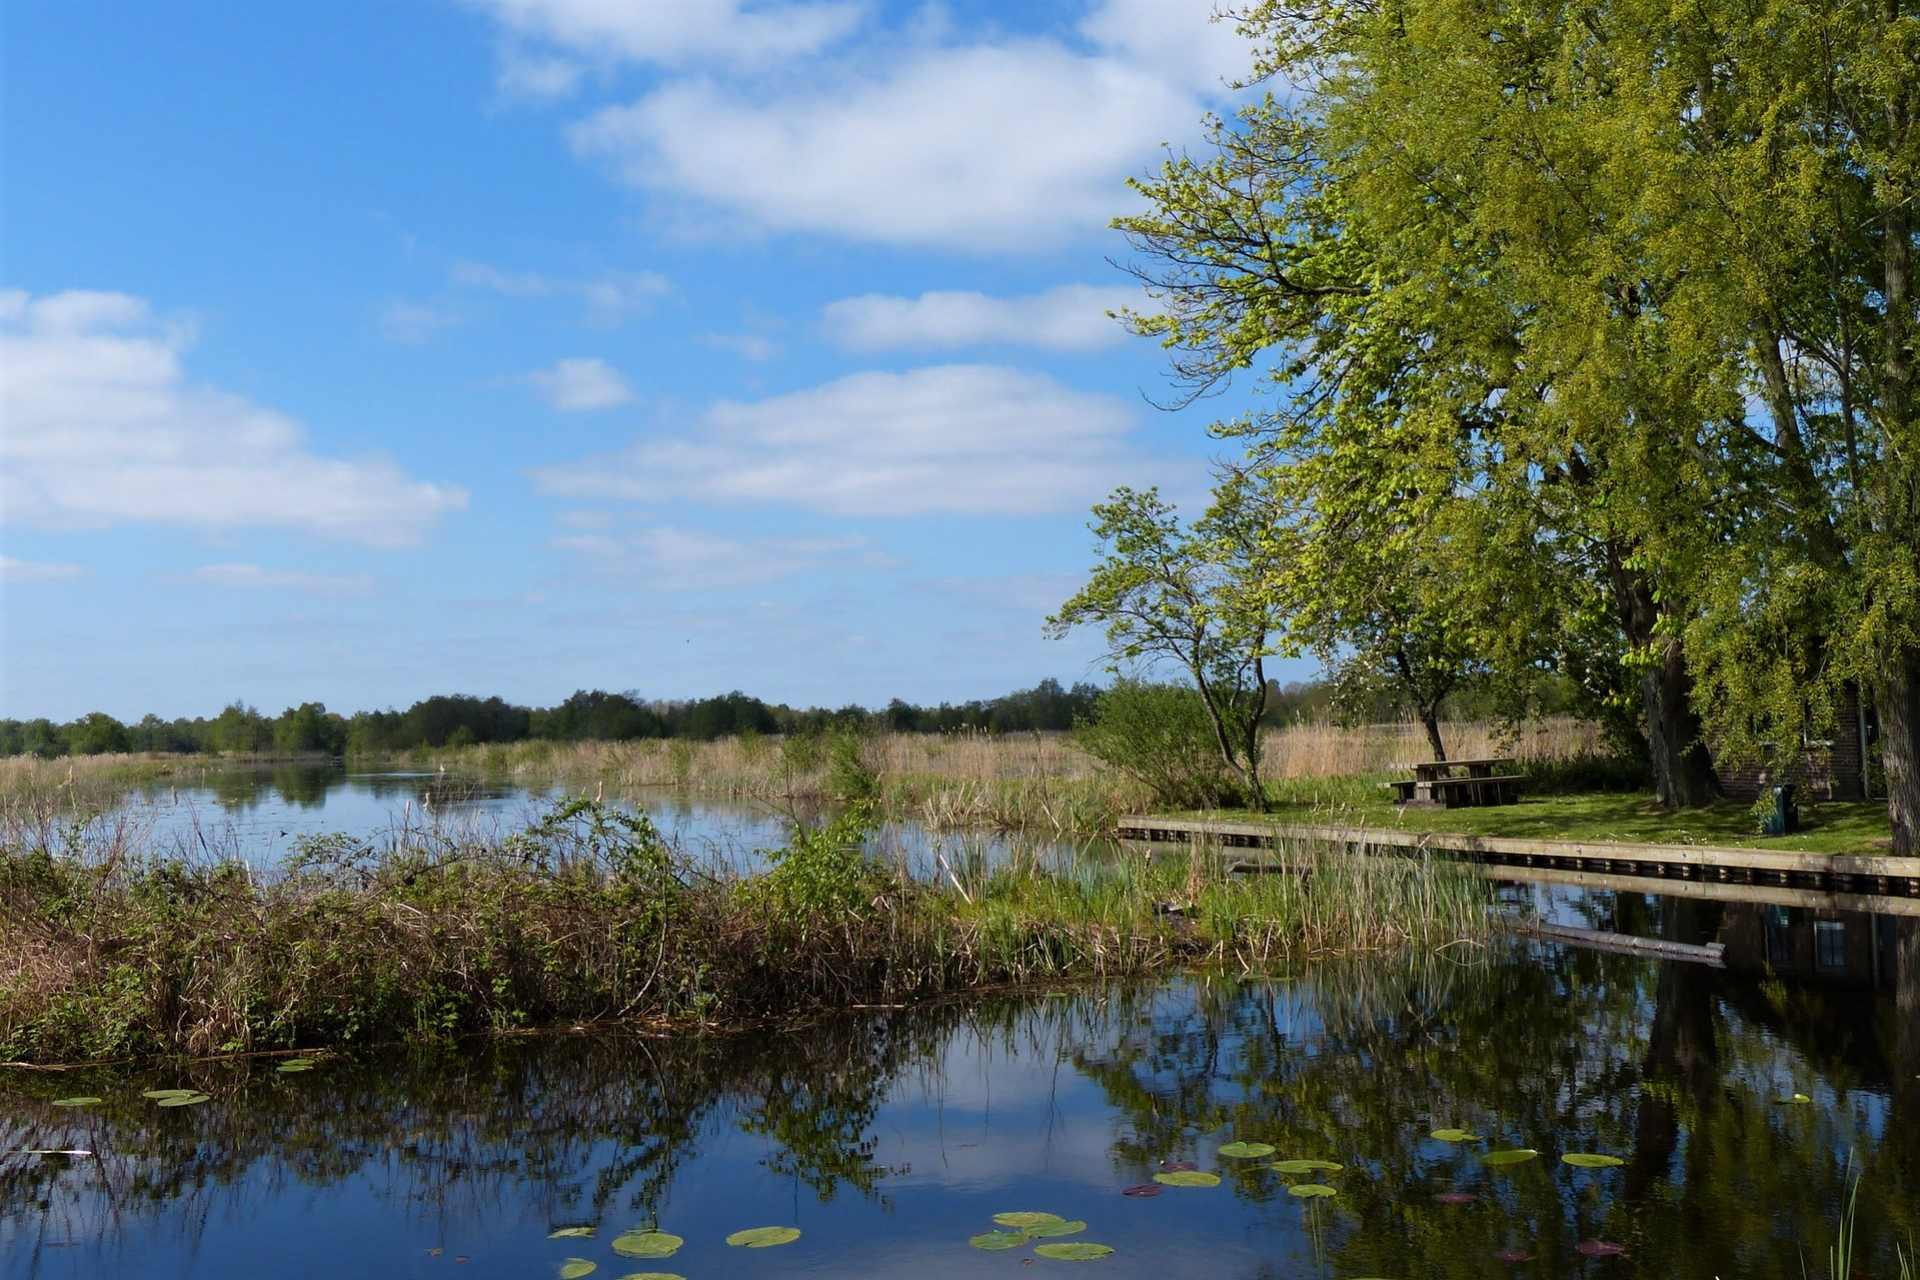 water-with-lily-pads-and-vegetation-coming-out-of-water-weerribben-wieden